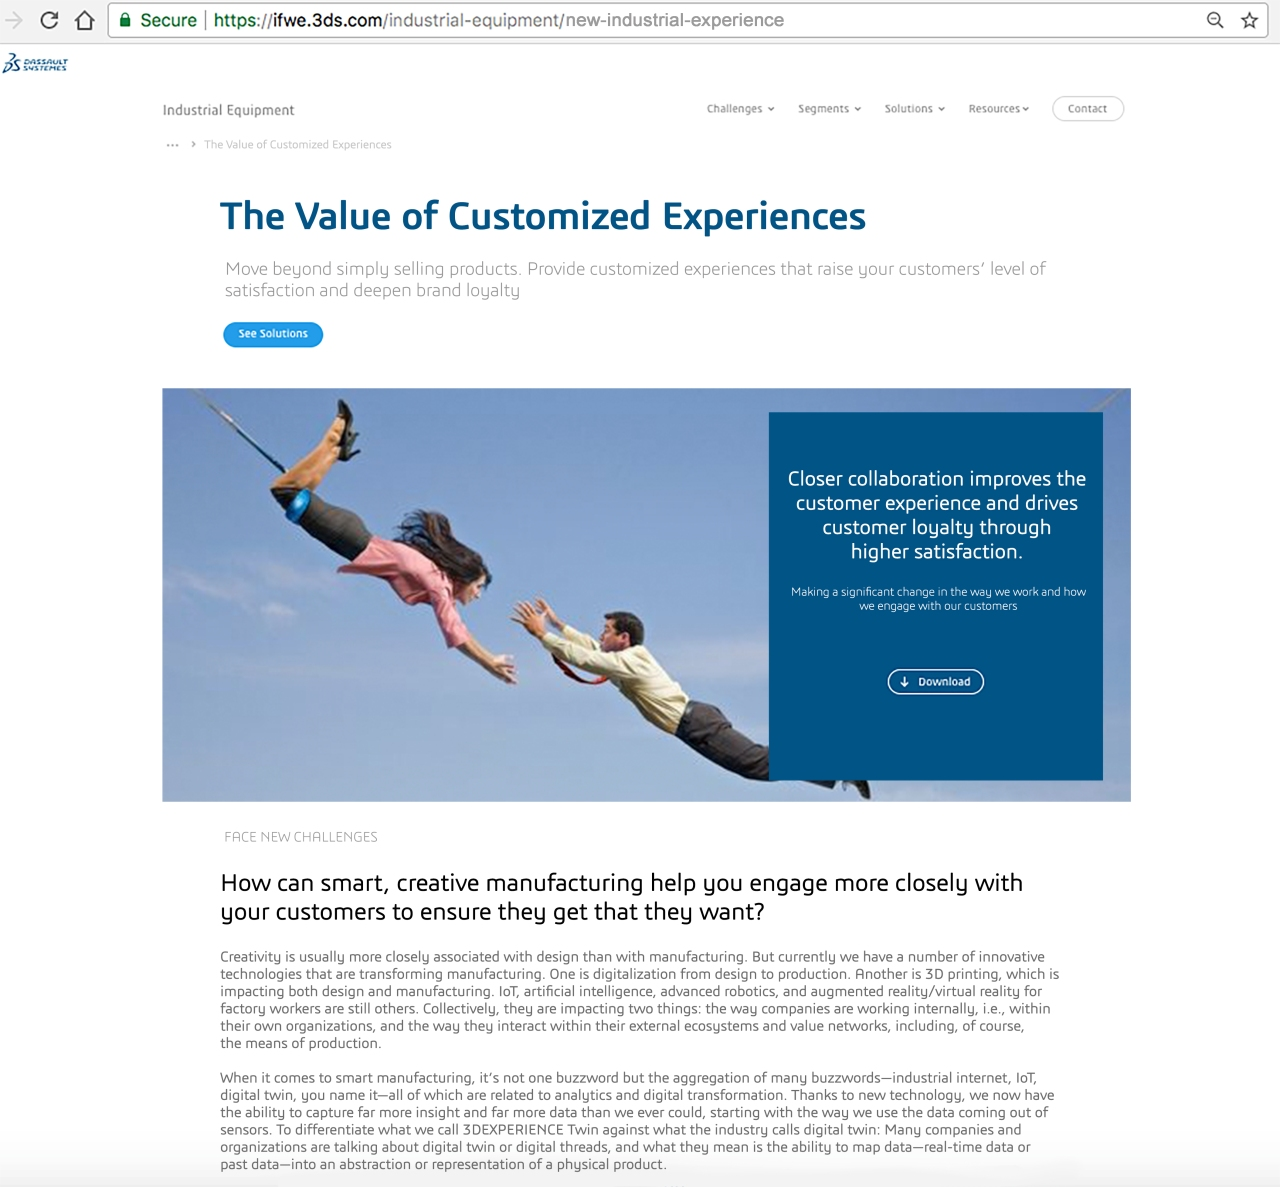 The Value of Customized Experiences